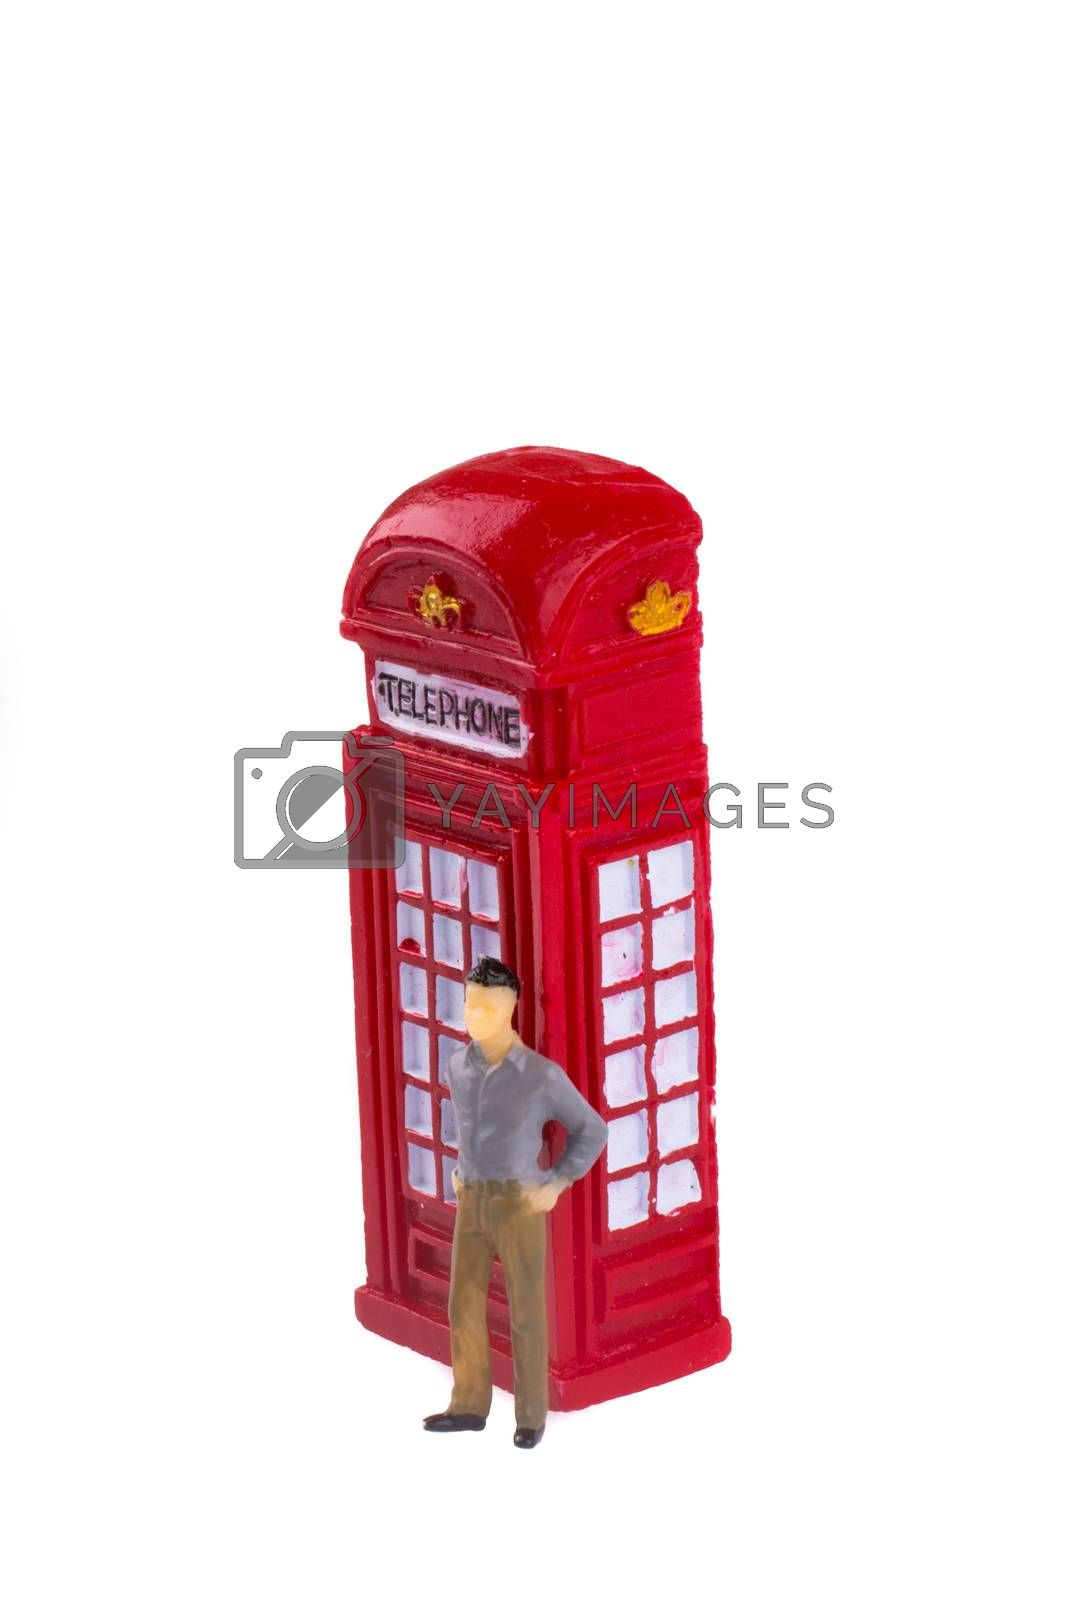 Model man standing by the telephone booth on a white background